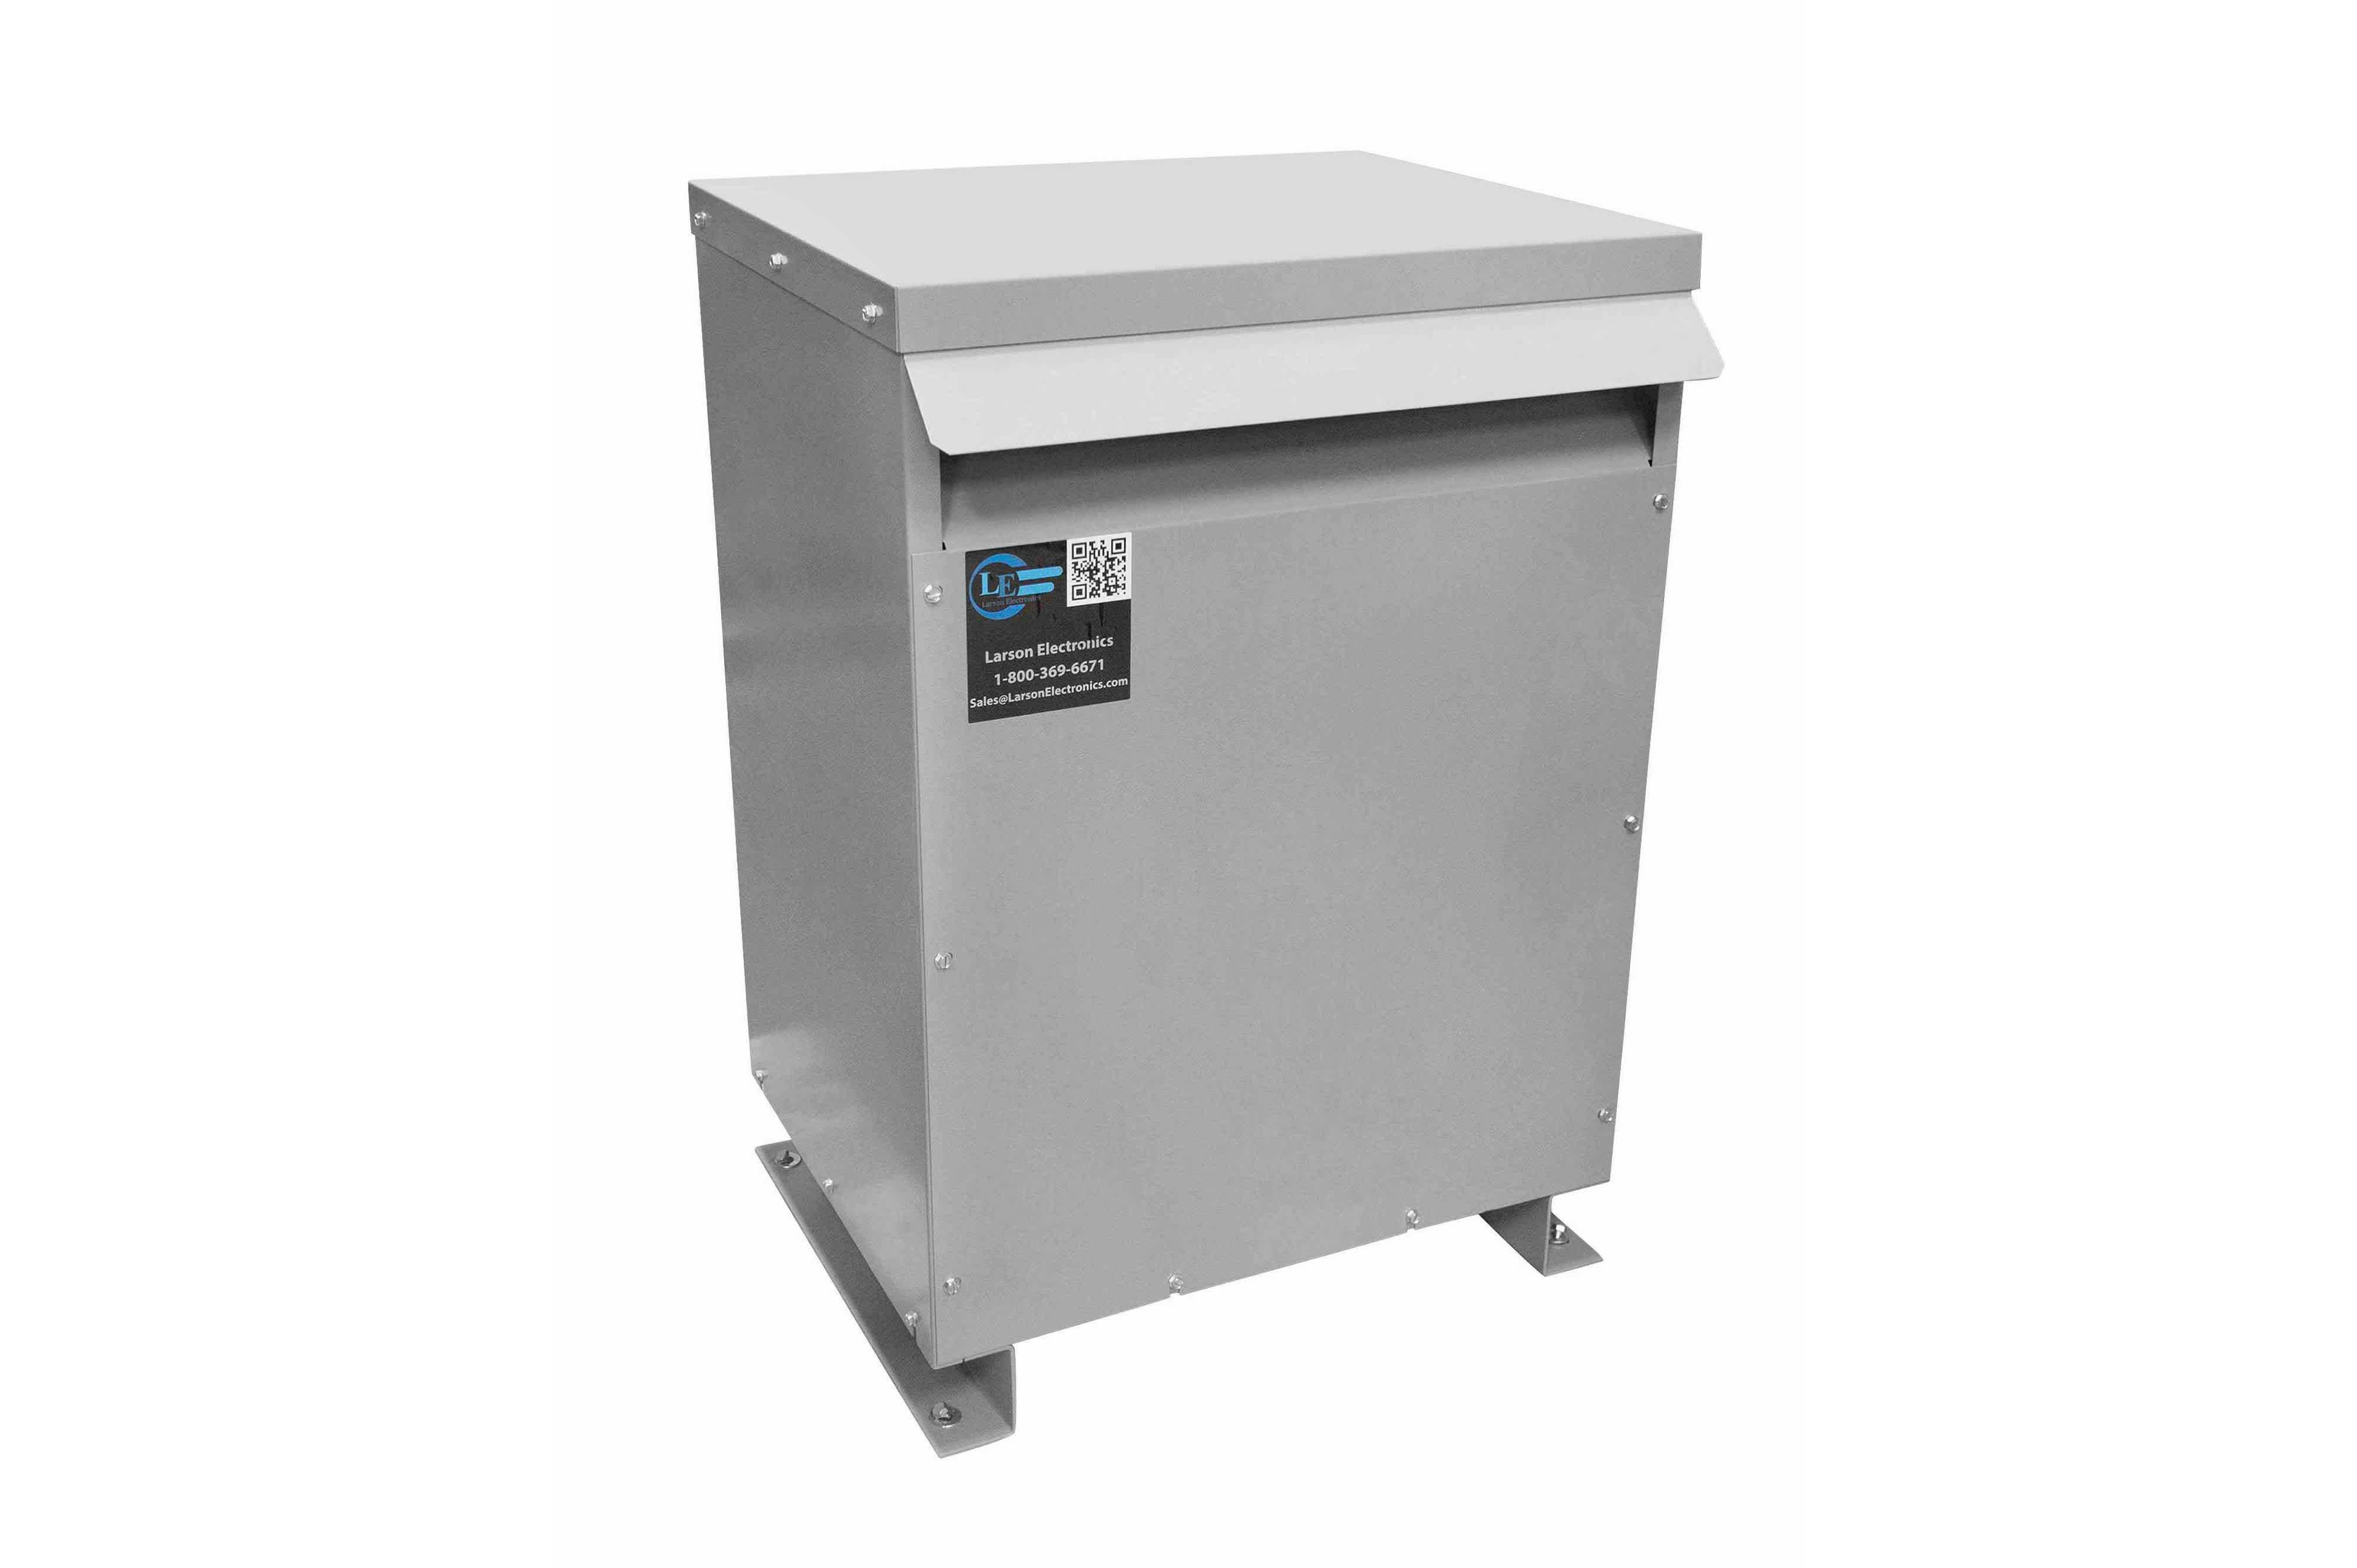 20 kVA 3PH Isolation Transformer, 575V Wye Primary, 240V Delta Secondary, N3R, Ventilated, 60 Hz